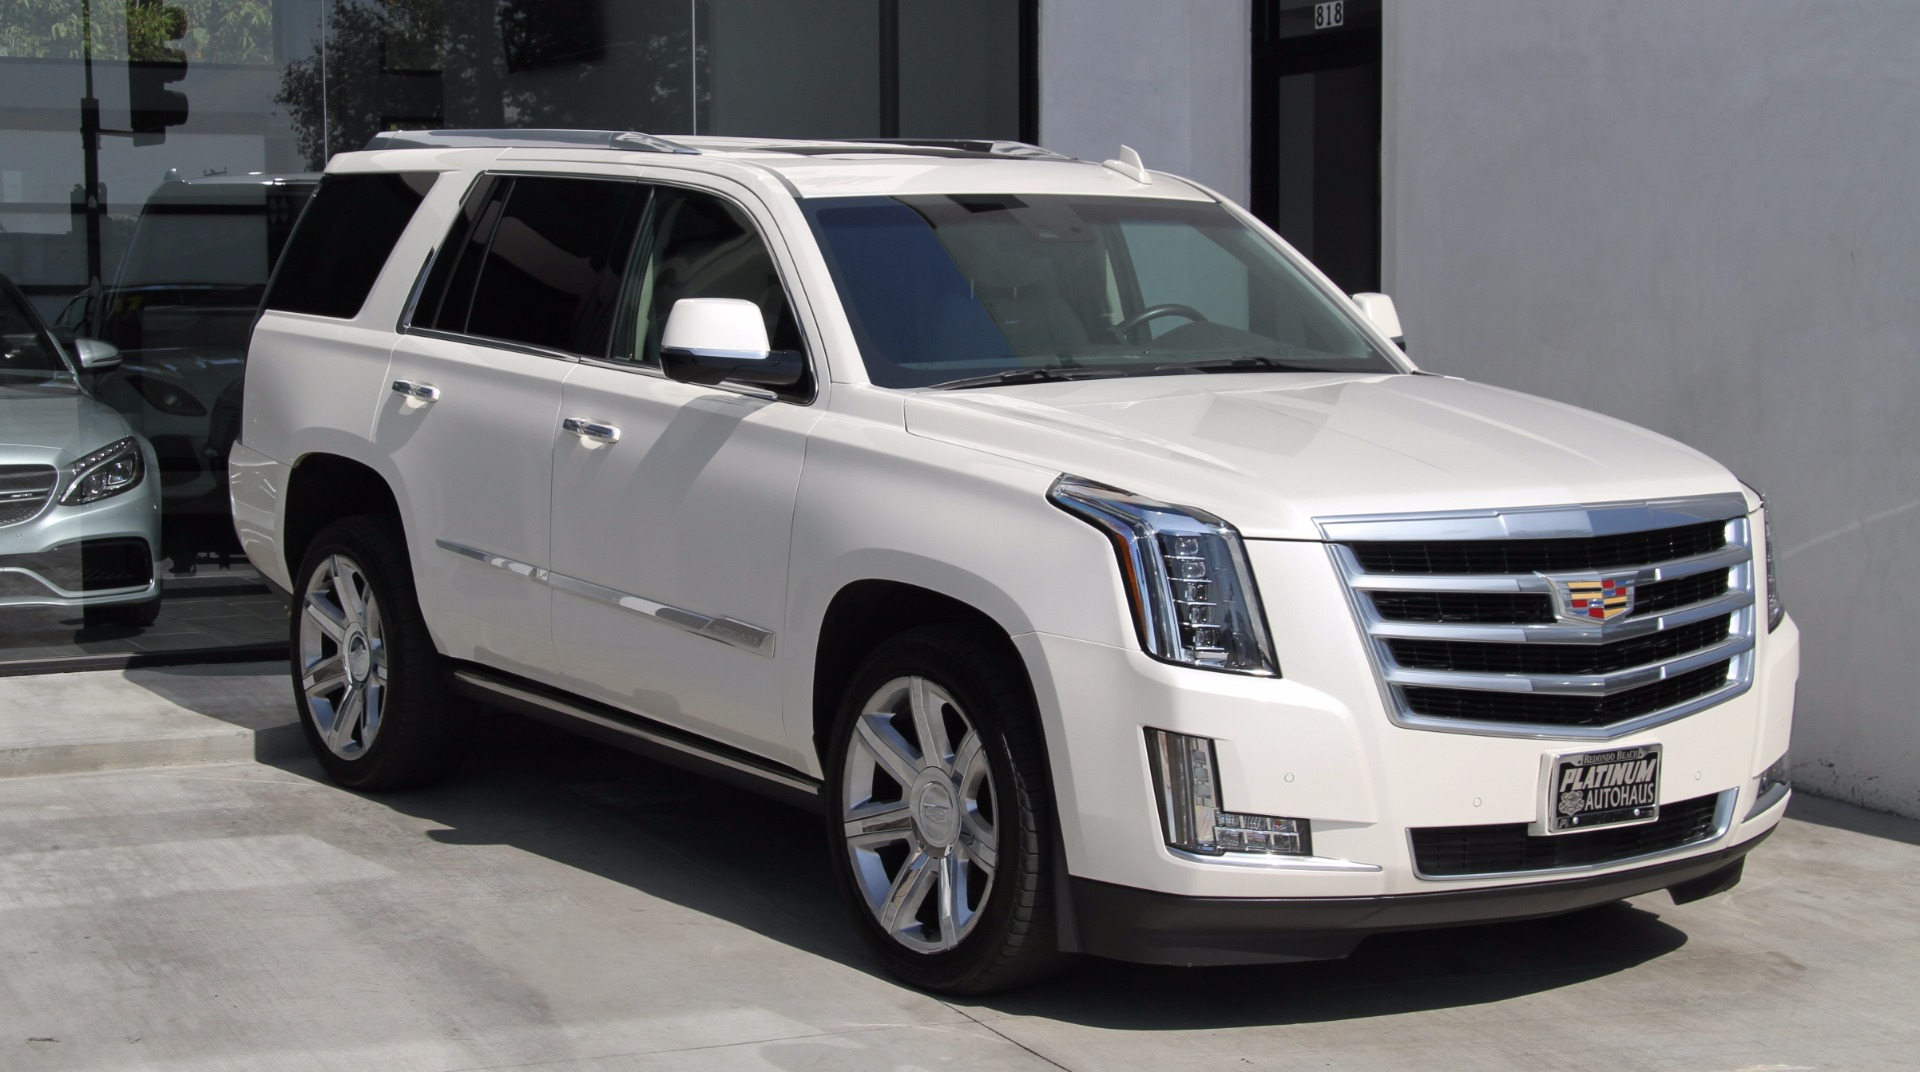 7 Passenger Suv >> 2015 CADILLAC ESCALADE Premium Stock # 6020 for sale near Redondo Beach, CA | CA CADILLAC Dealer